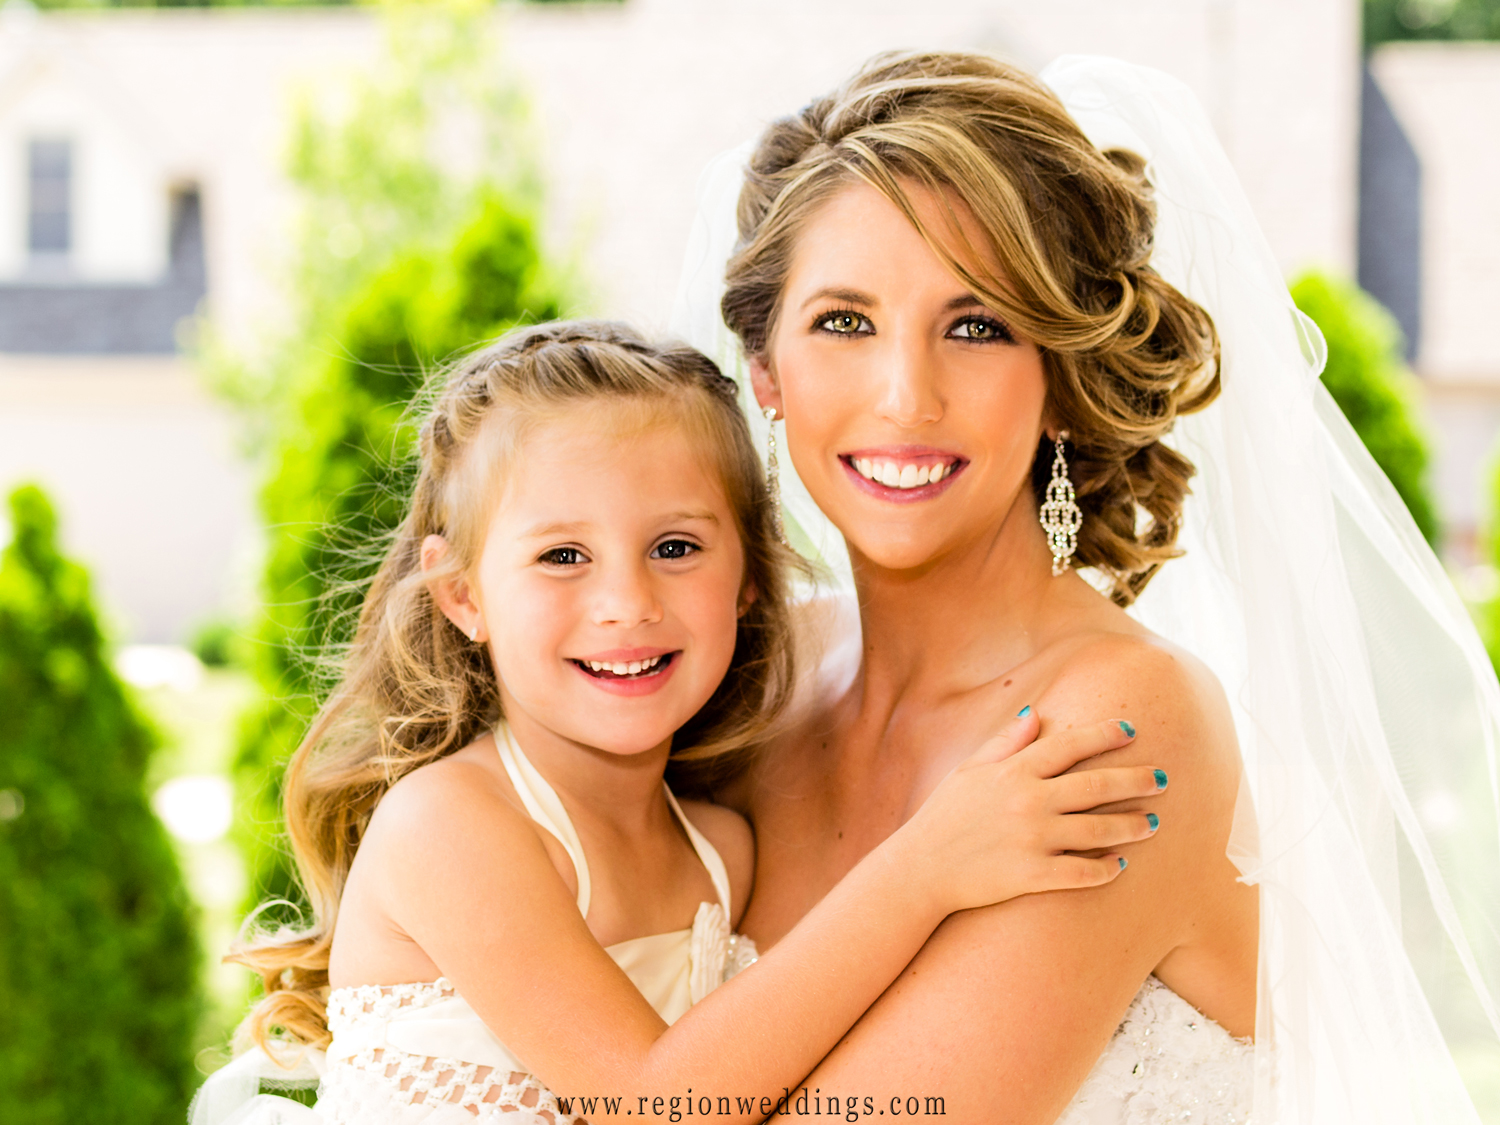 The flower girl hugs the bride for their wedding day portrait.